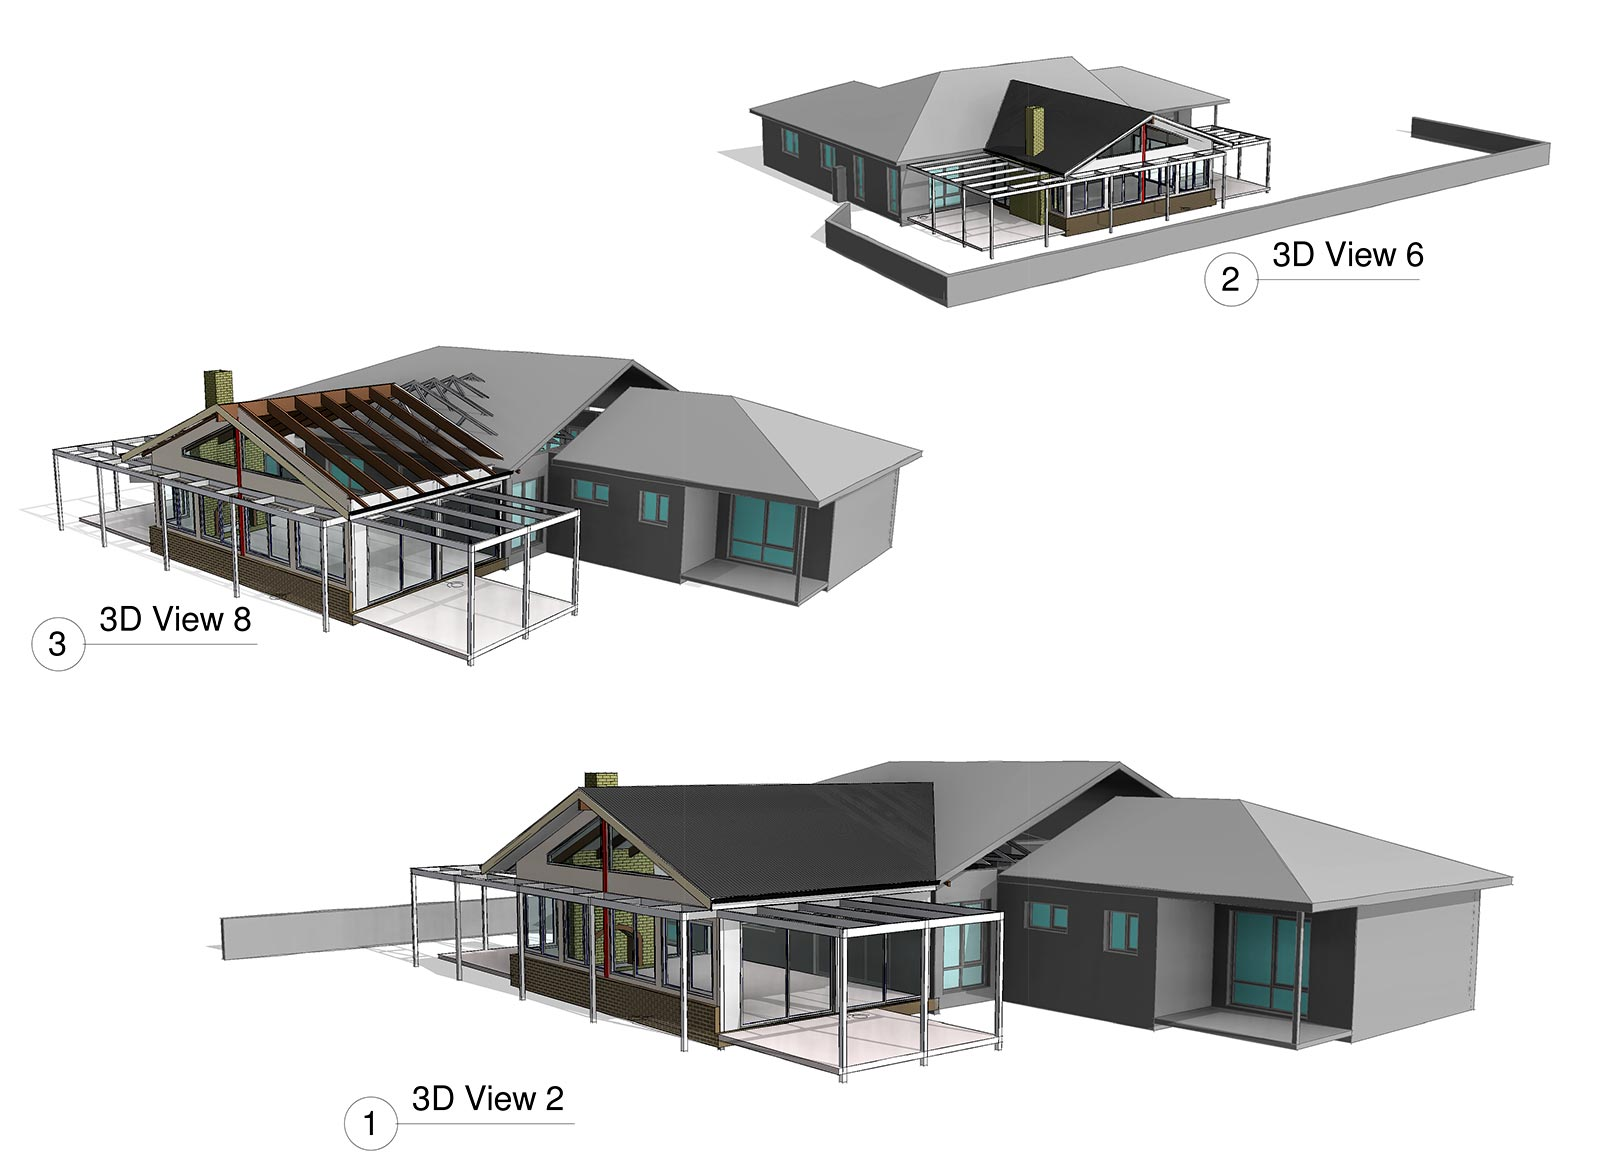 House extension to include a new family room